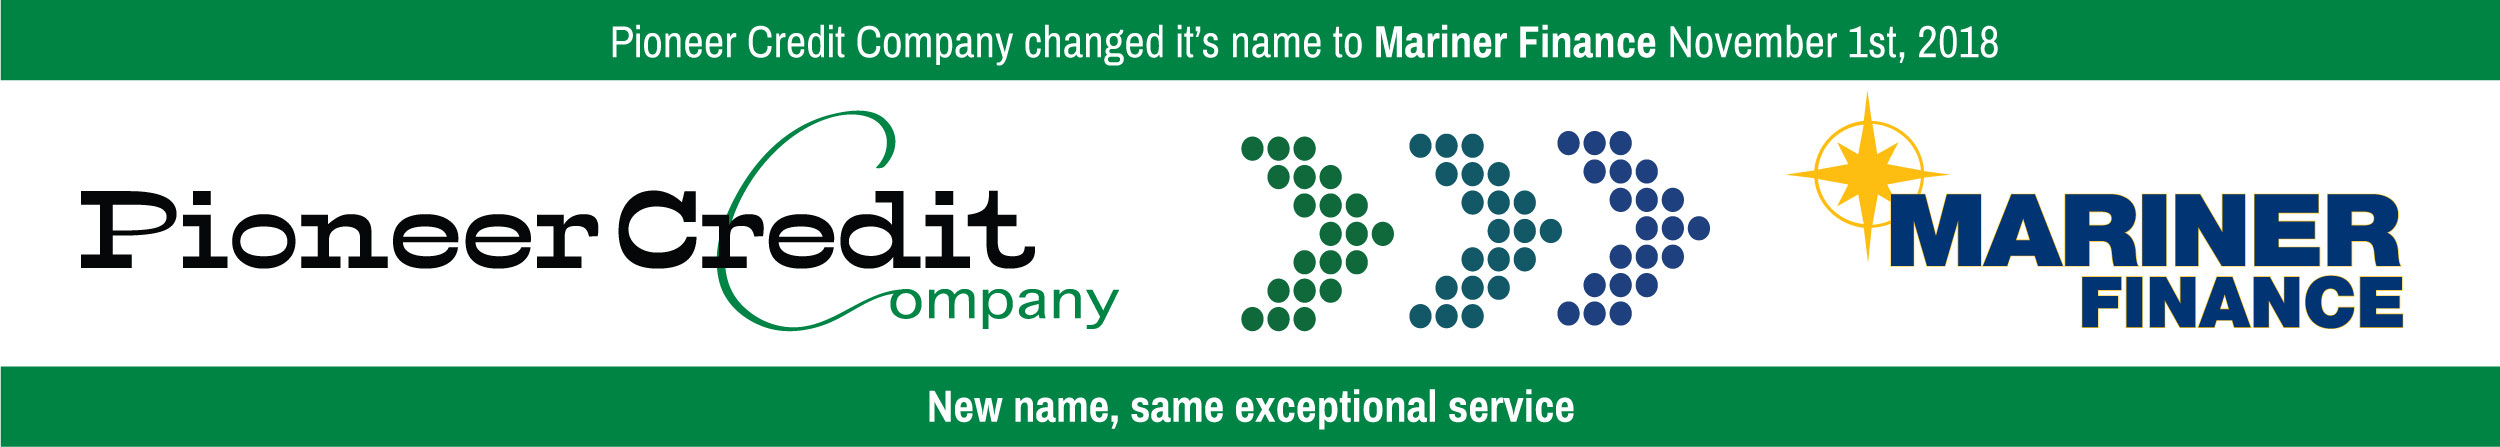 Pioneer changed it's name to Mariner Finance. November 1st, 2018